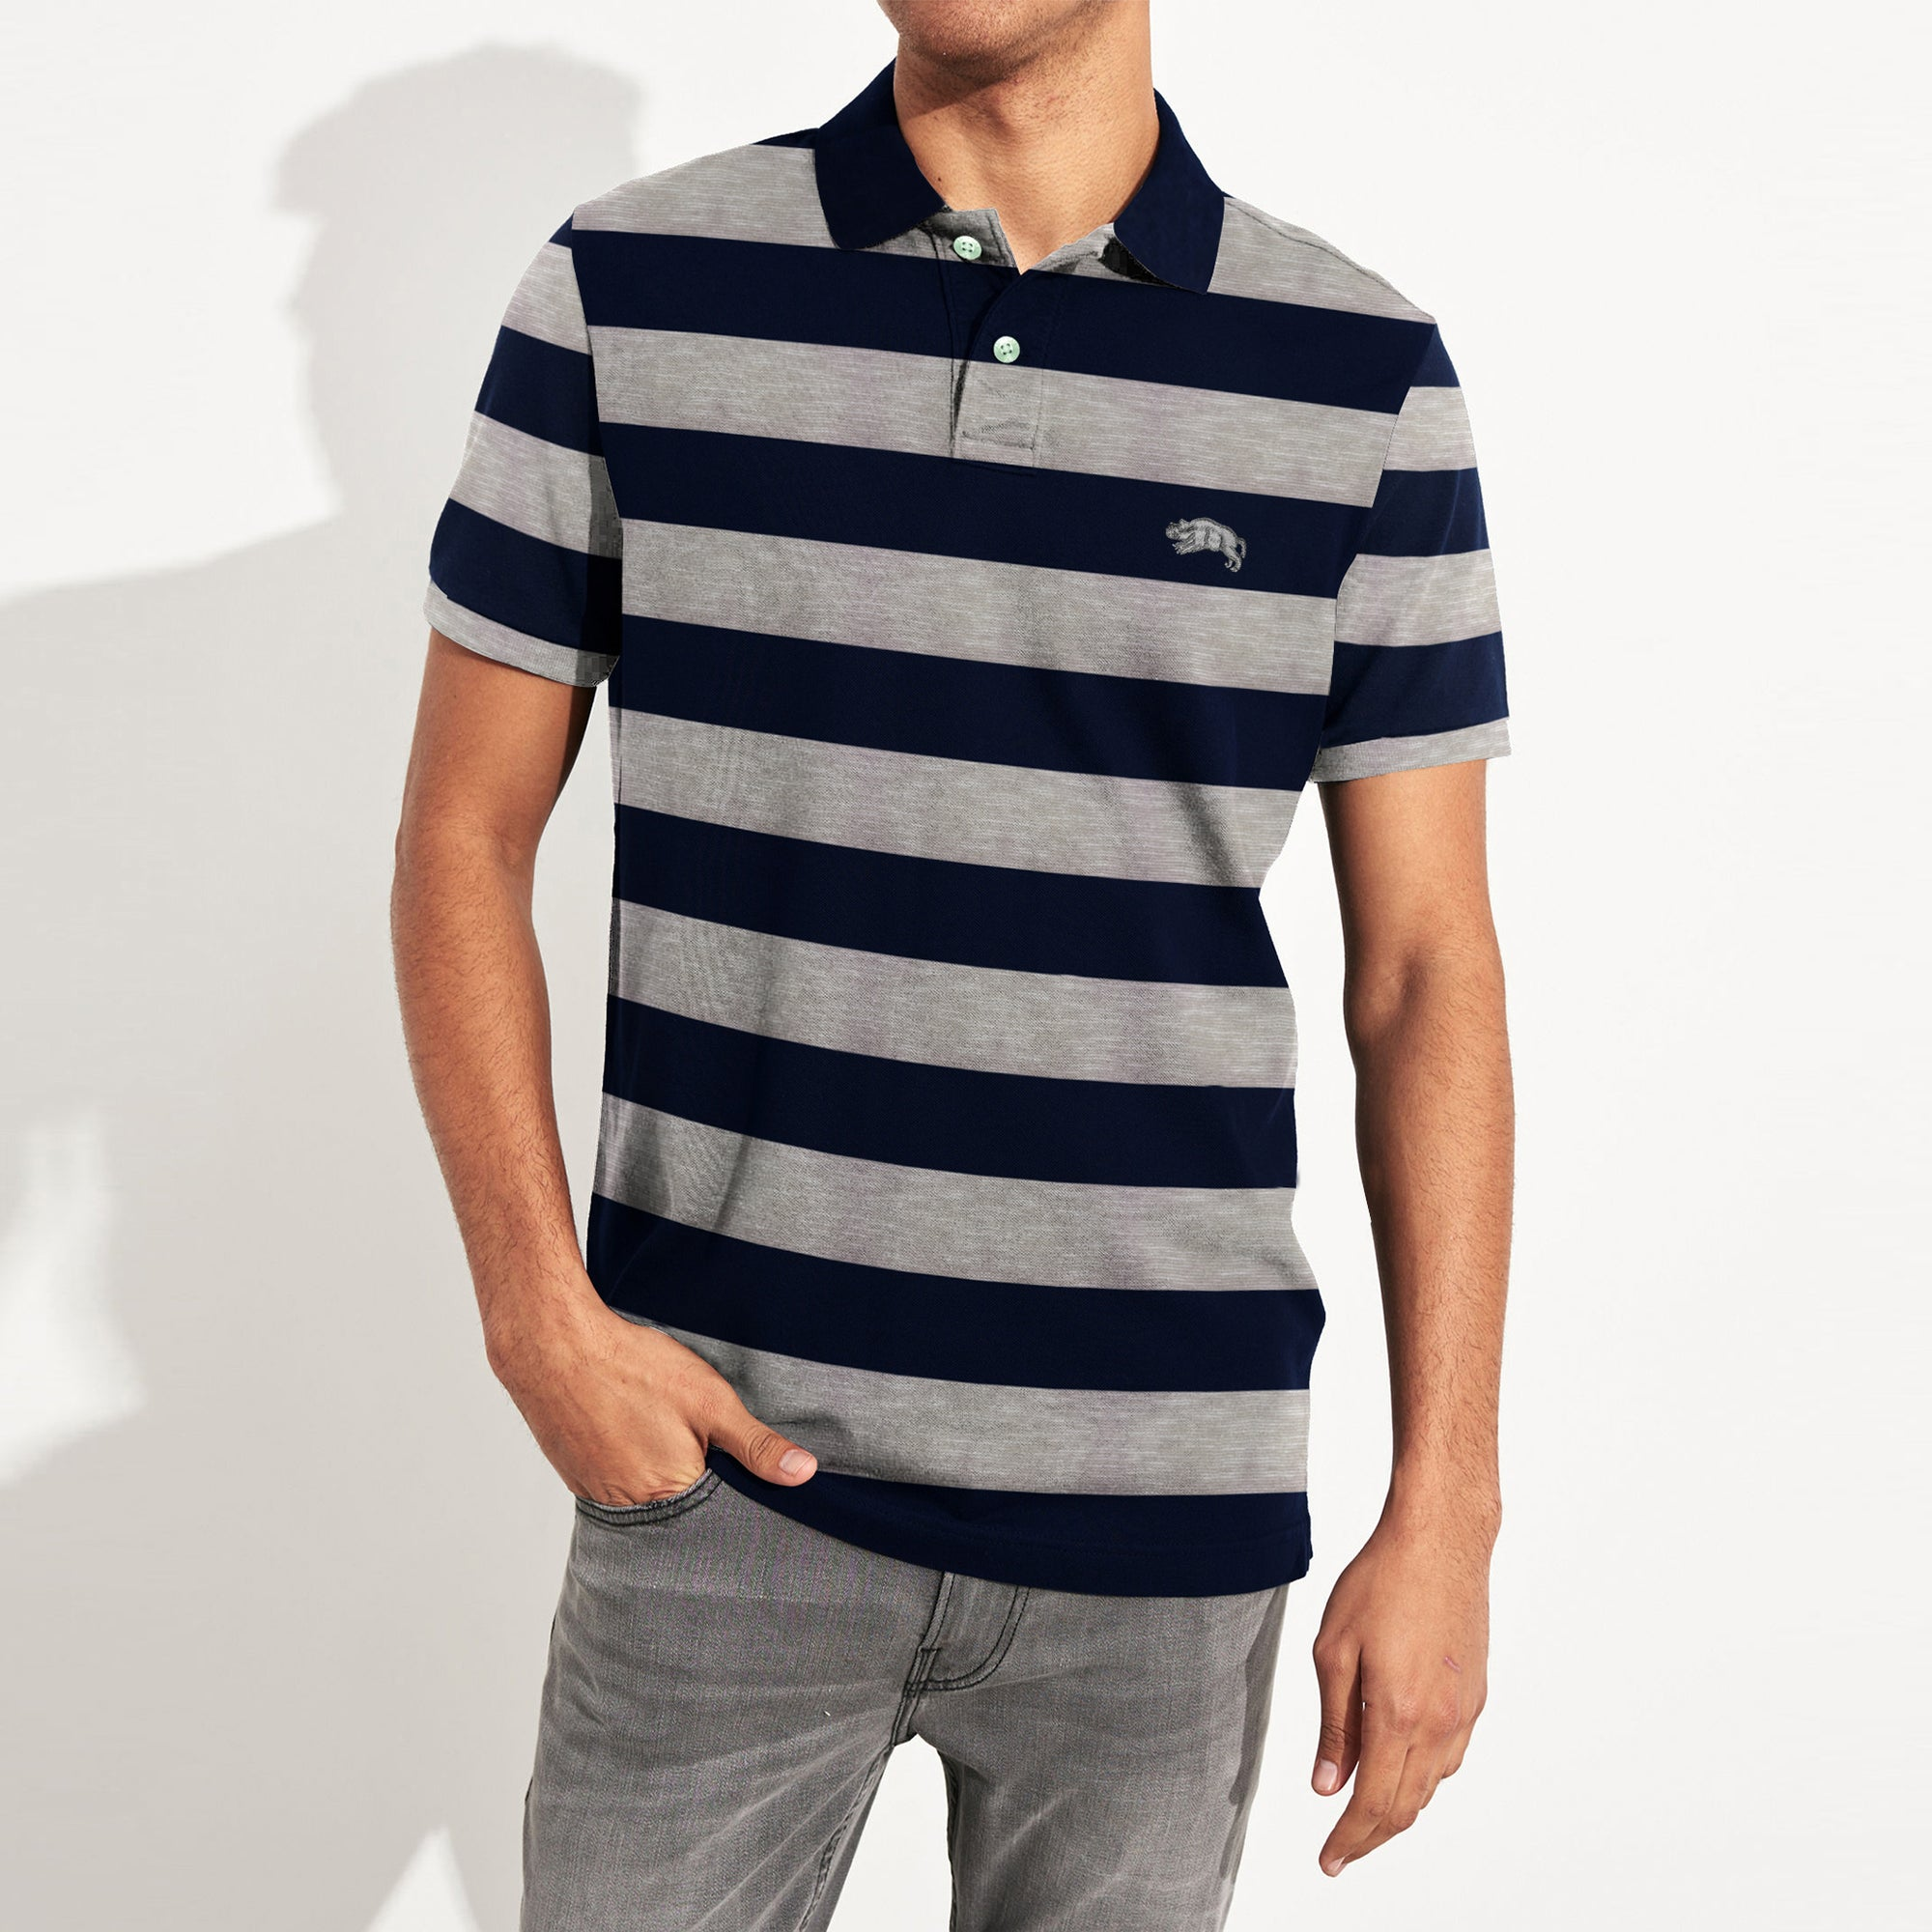 American Rag Short Sleeve Single Jersey Polo Shirt For Men-Dark Navy & Skin Stripe-SP036